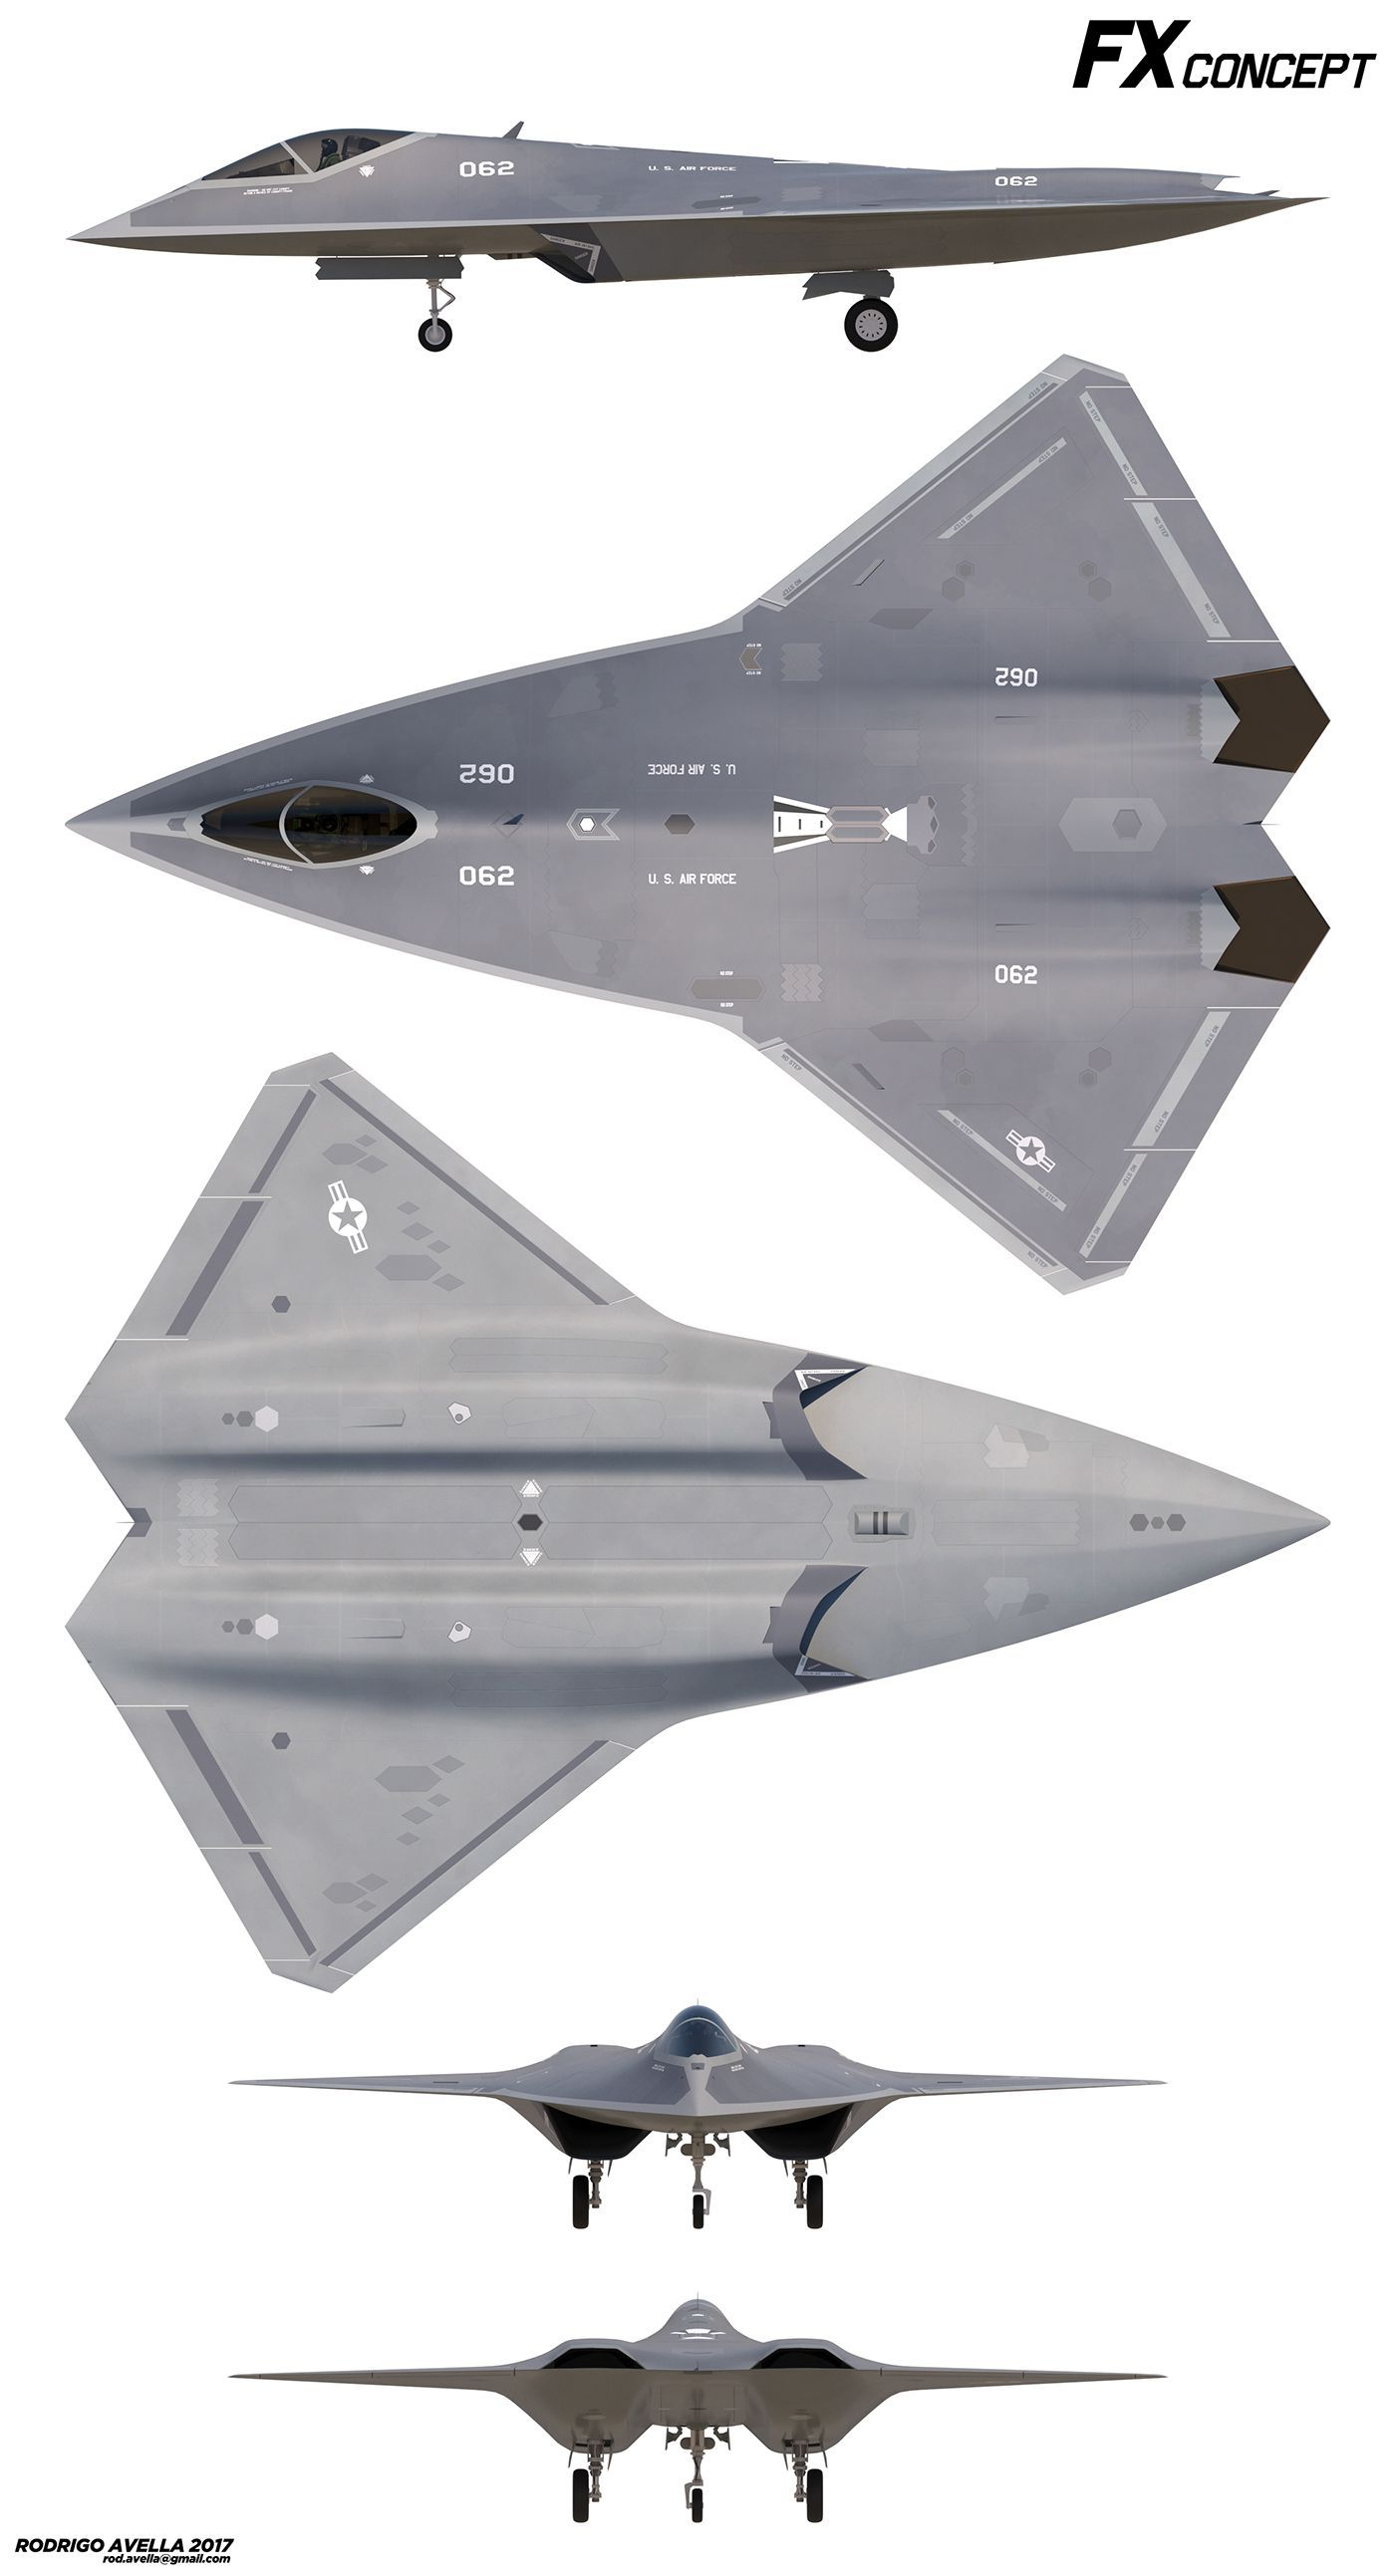 Concept for a next generation air dominance stealth